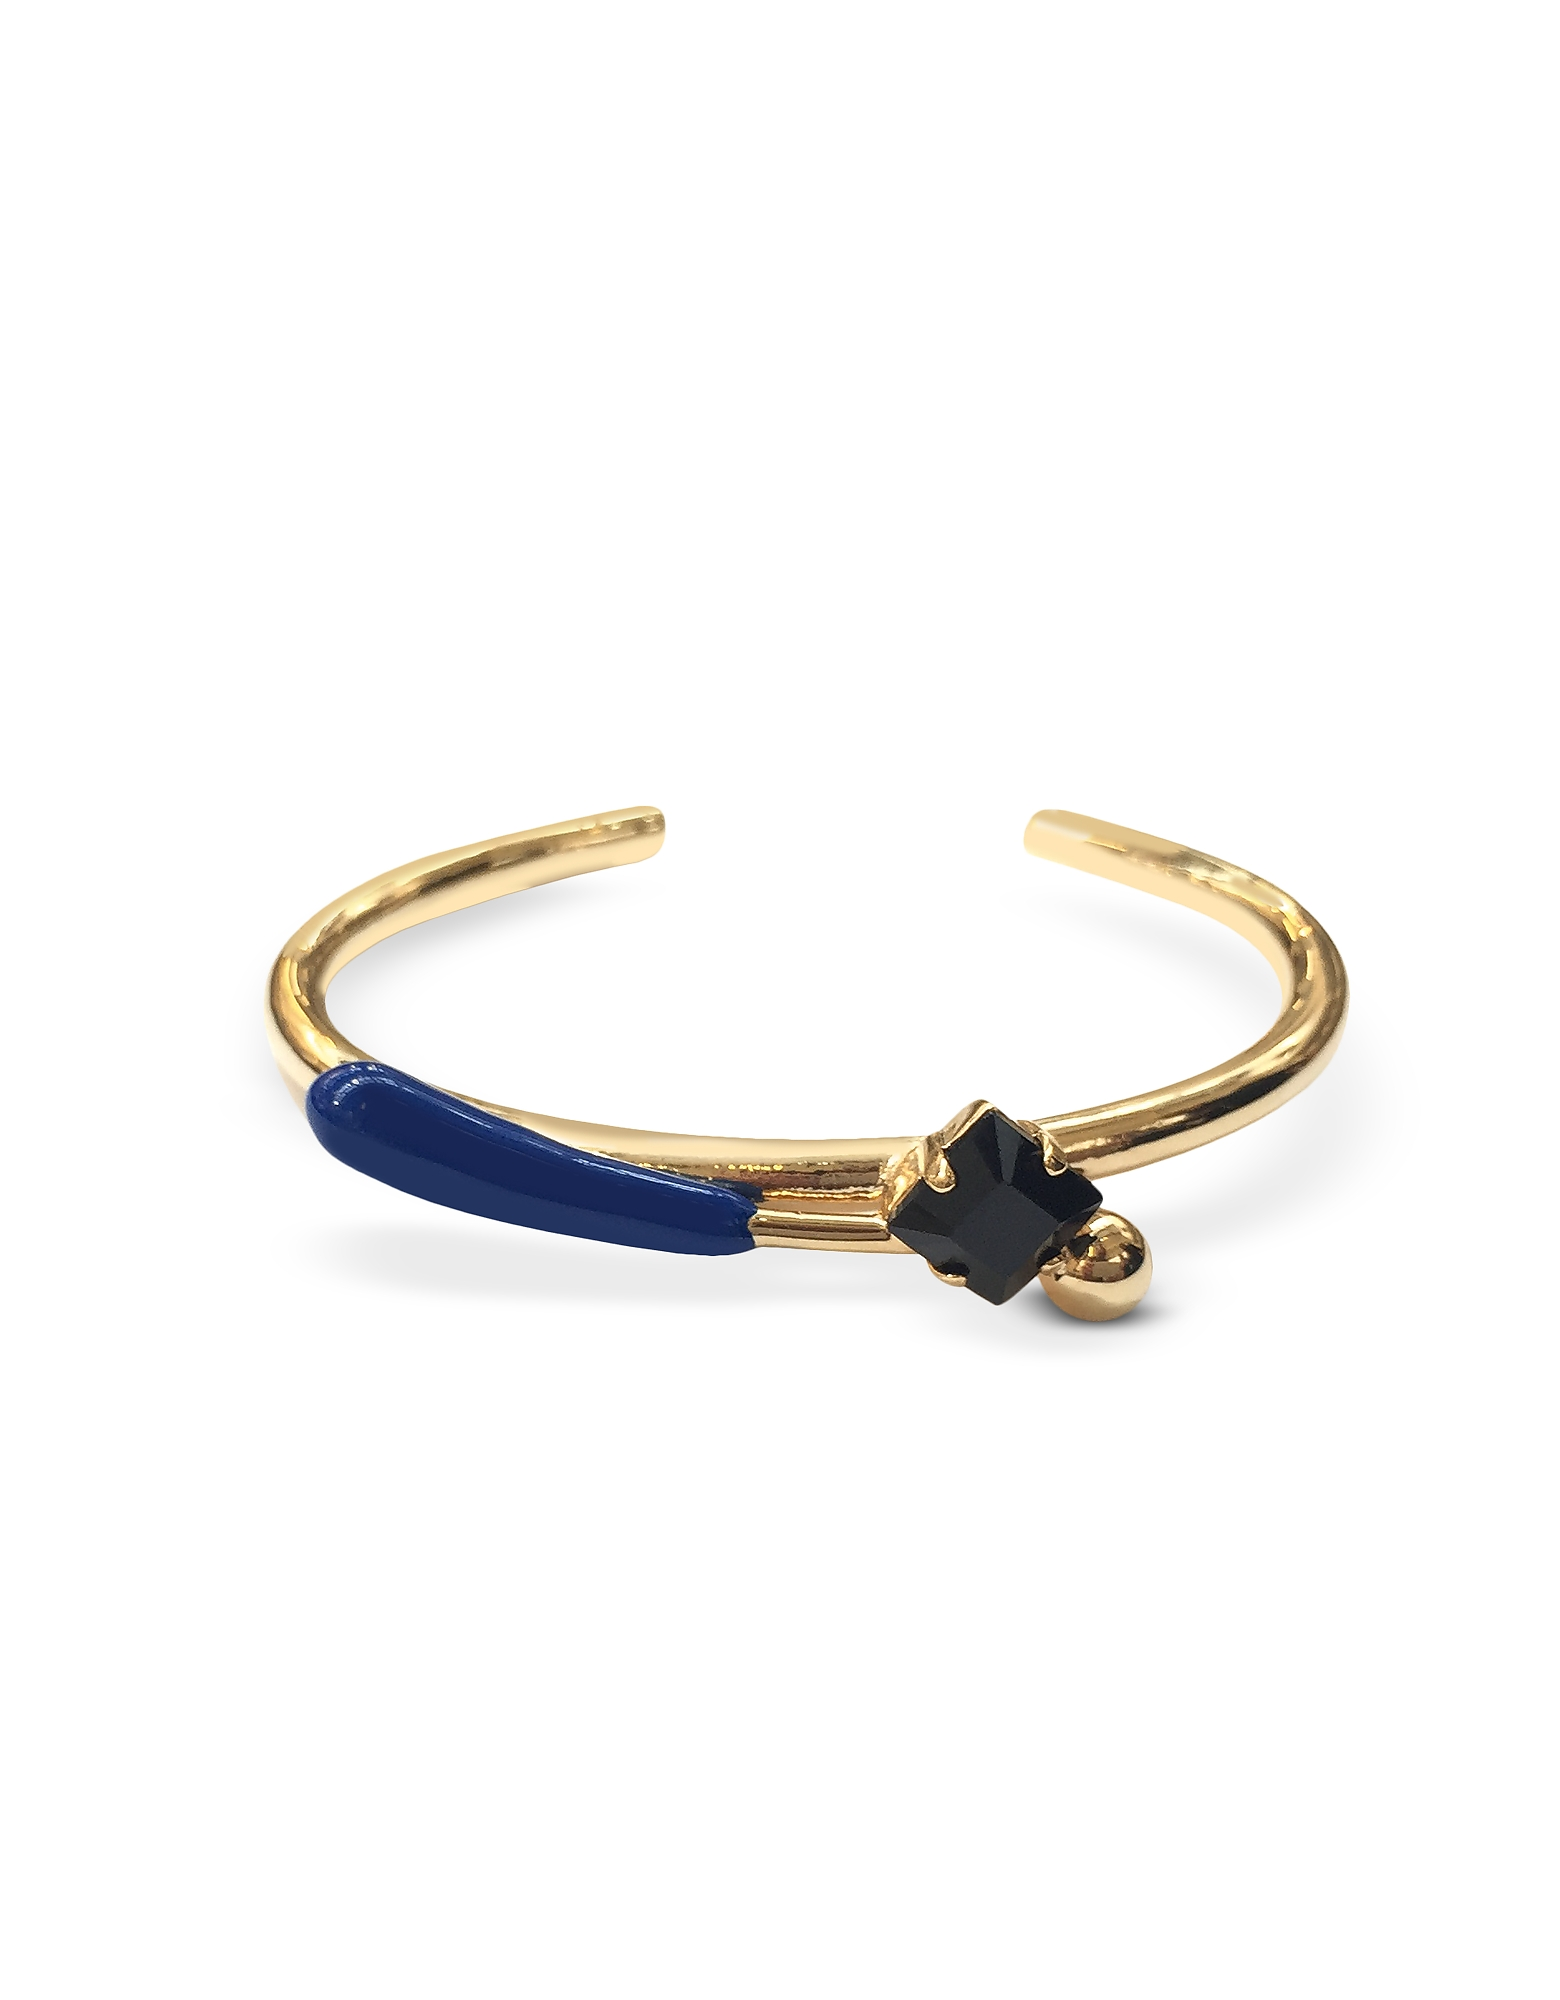 Image of Marni Designer Bracelets, Gold Metal and Mazarine Blue Enamel and Strass Cuff Bracelet